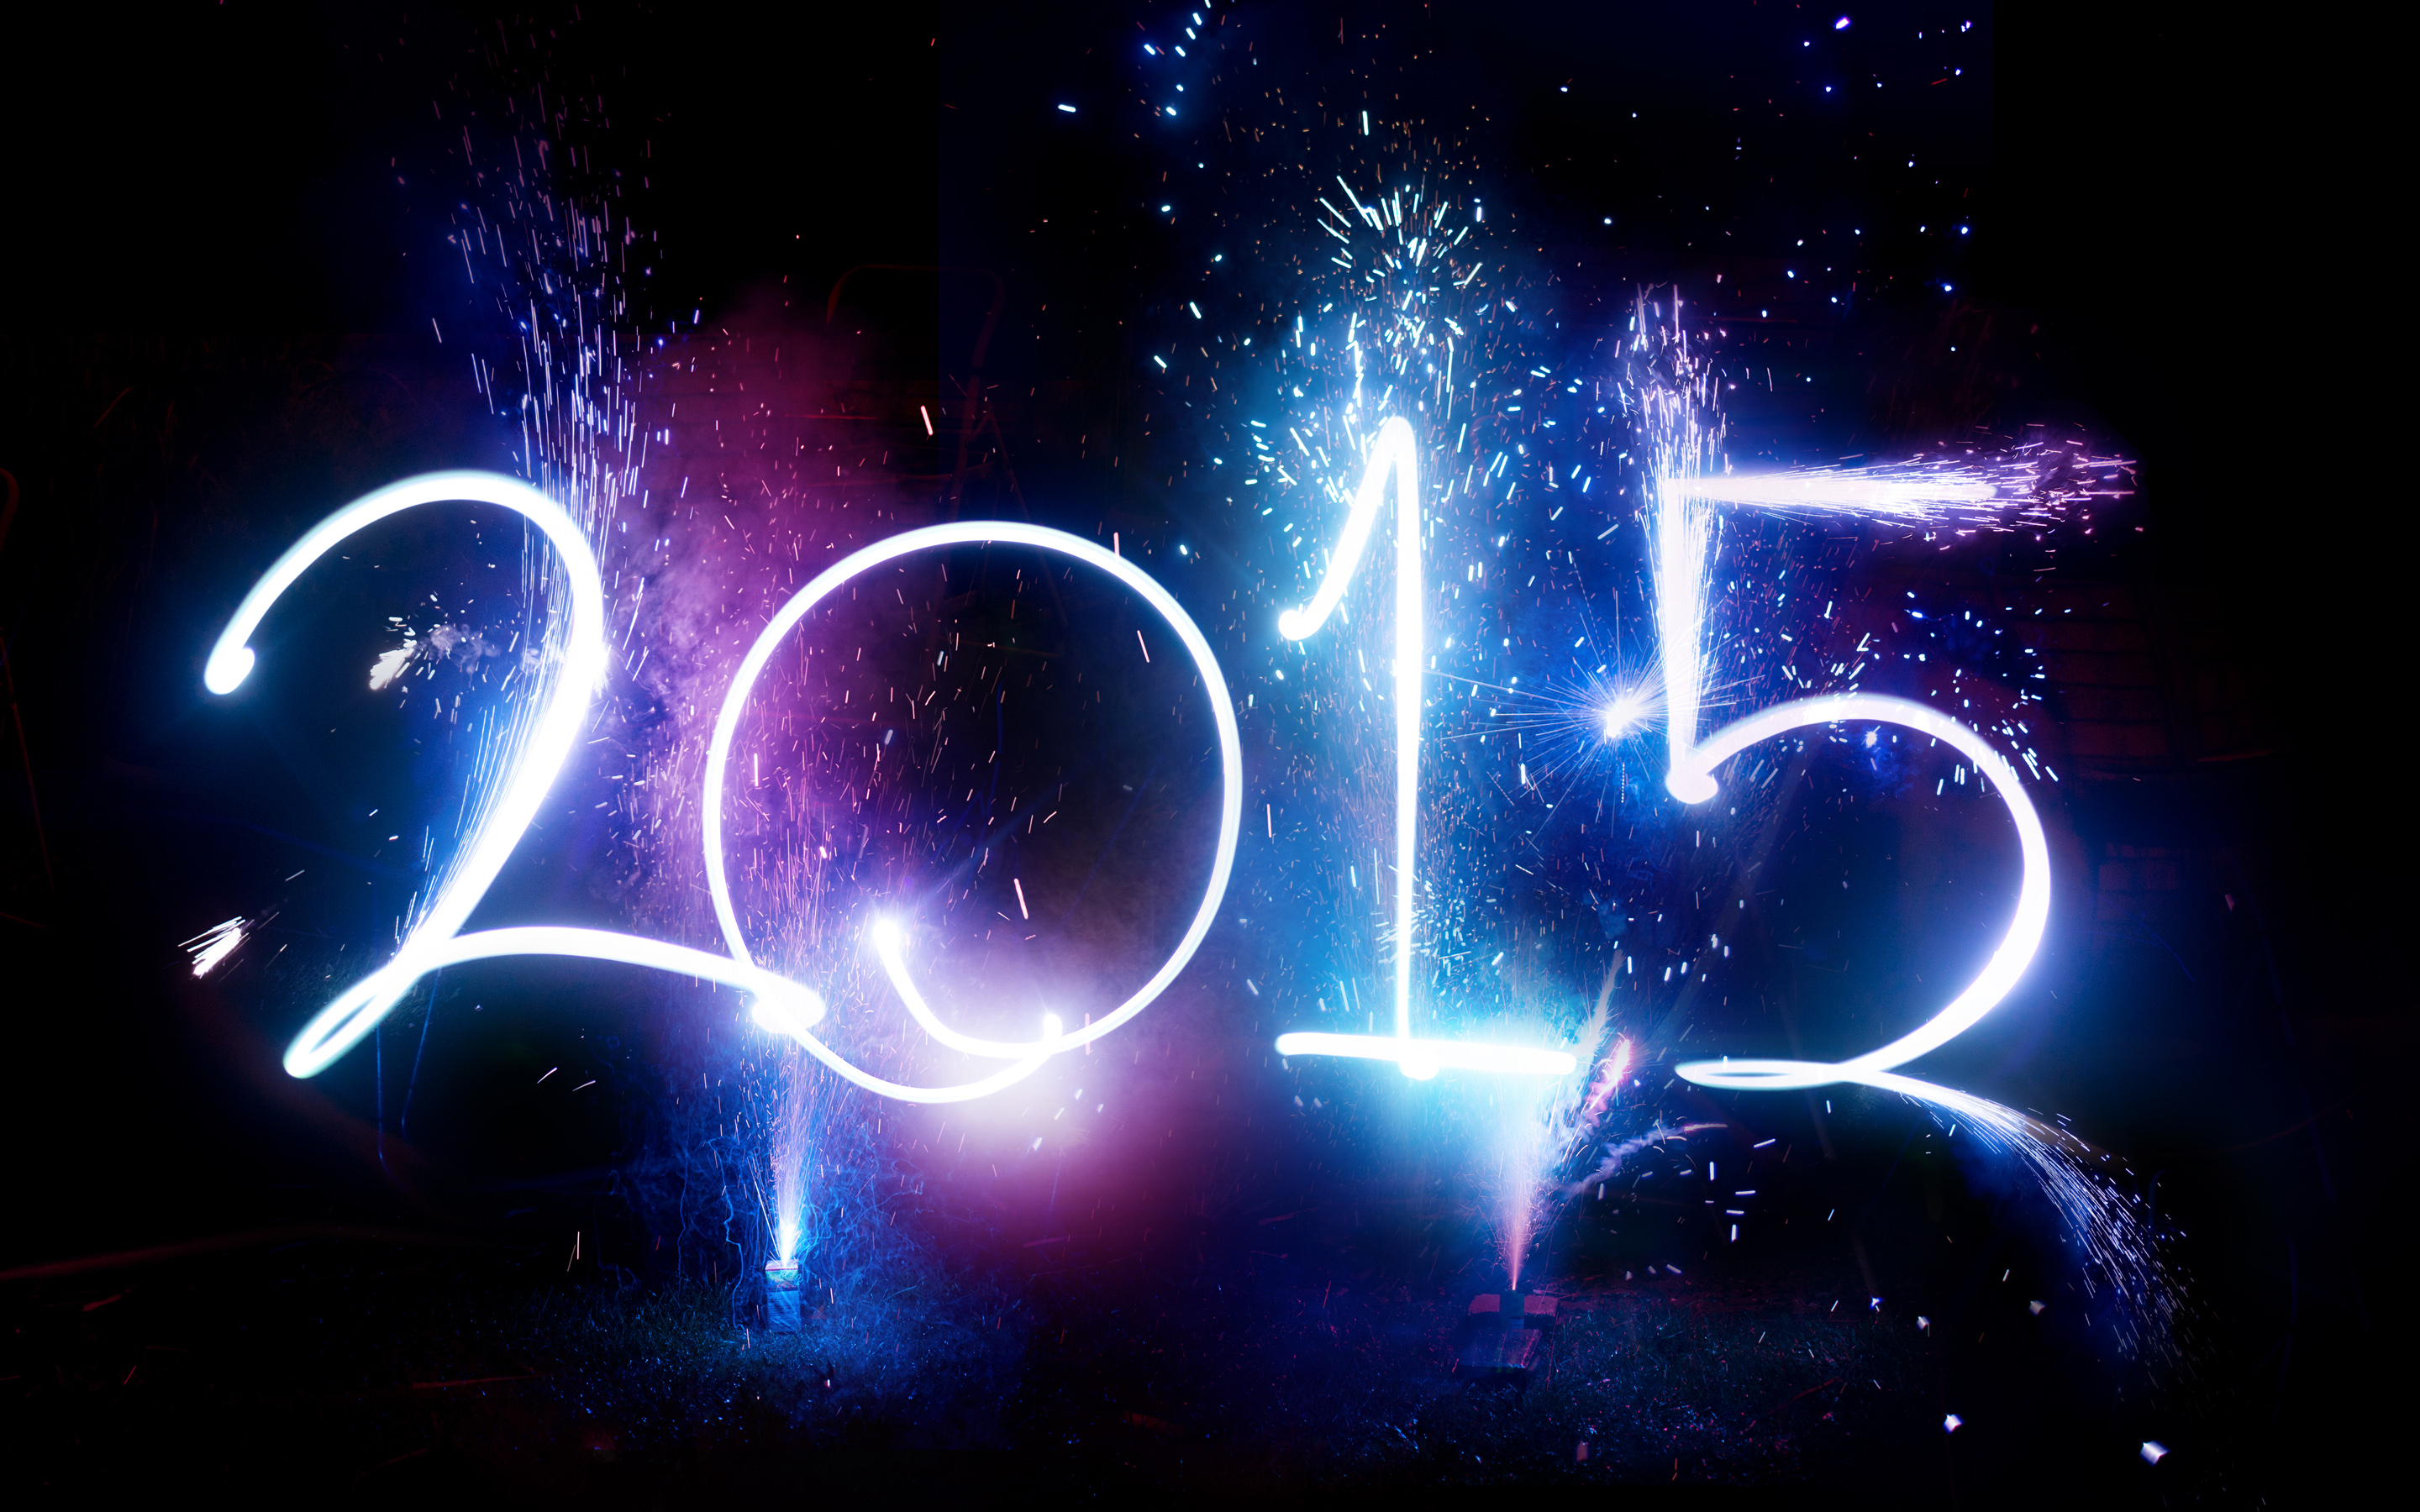 download New Year 2015 Wallpapers HD Wallpapers [2880x1800 2880x1800